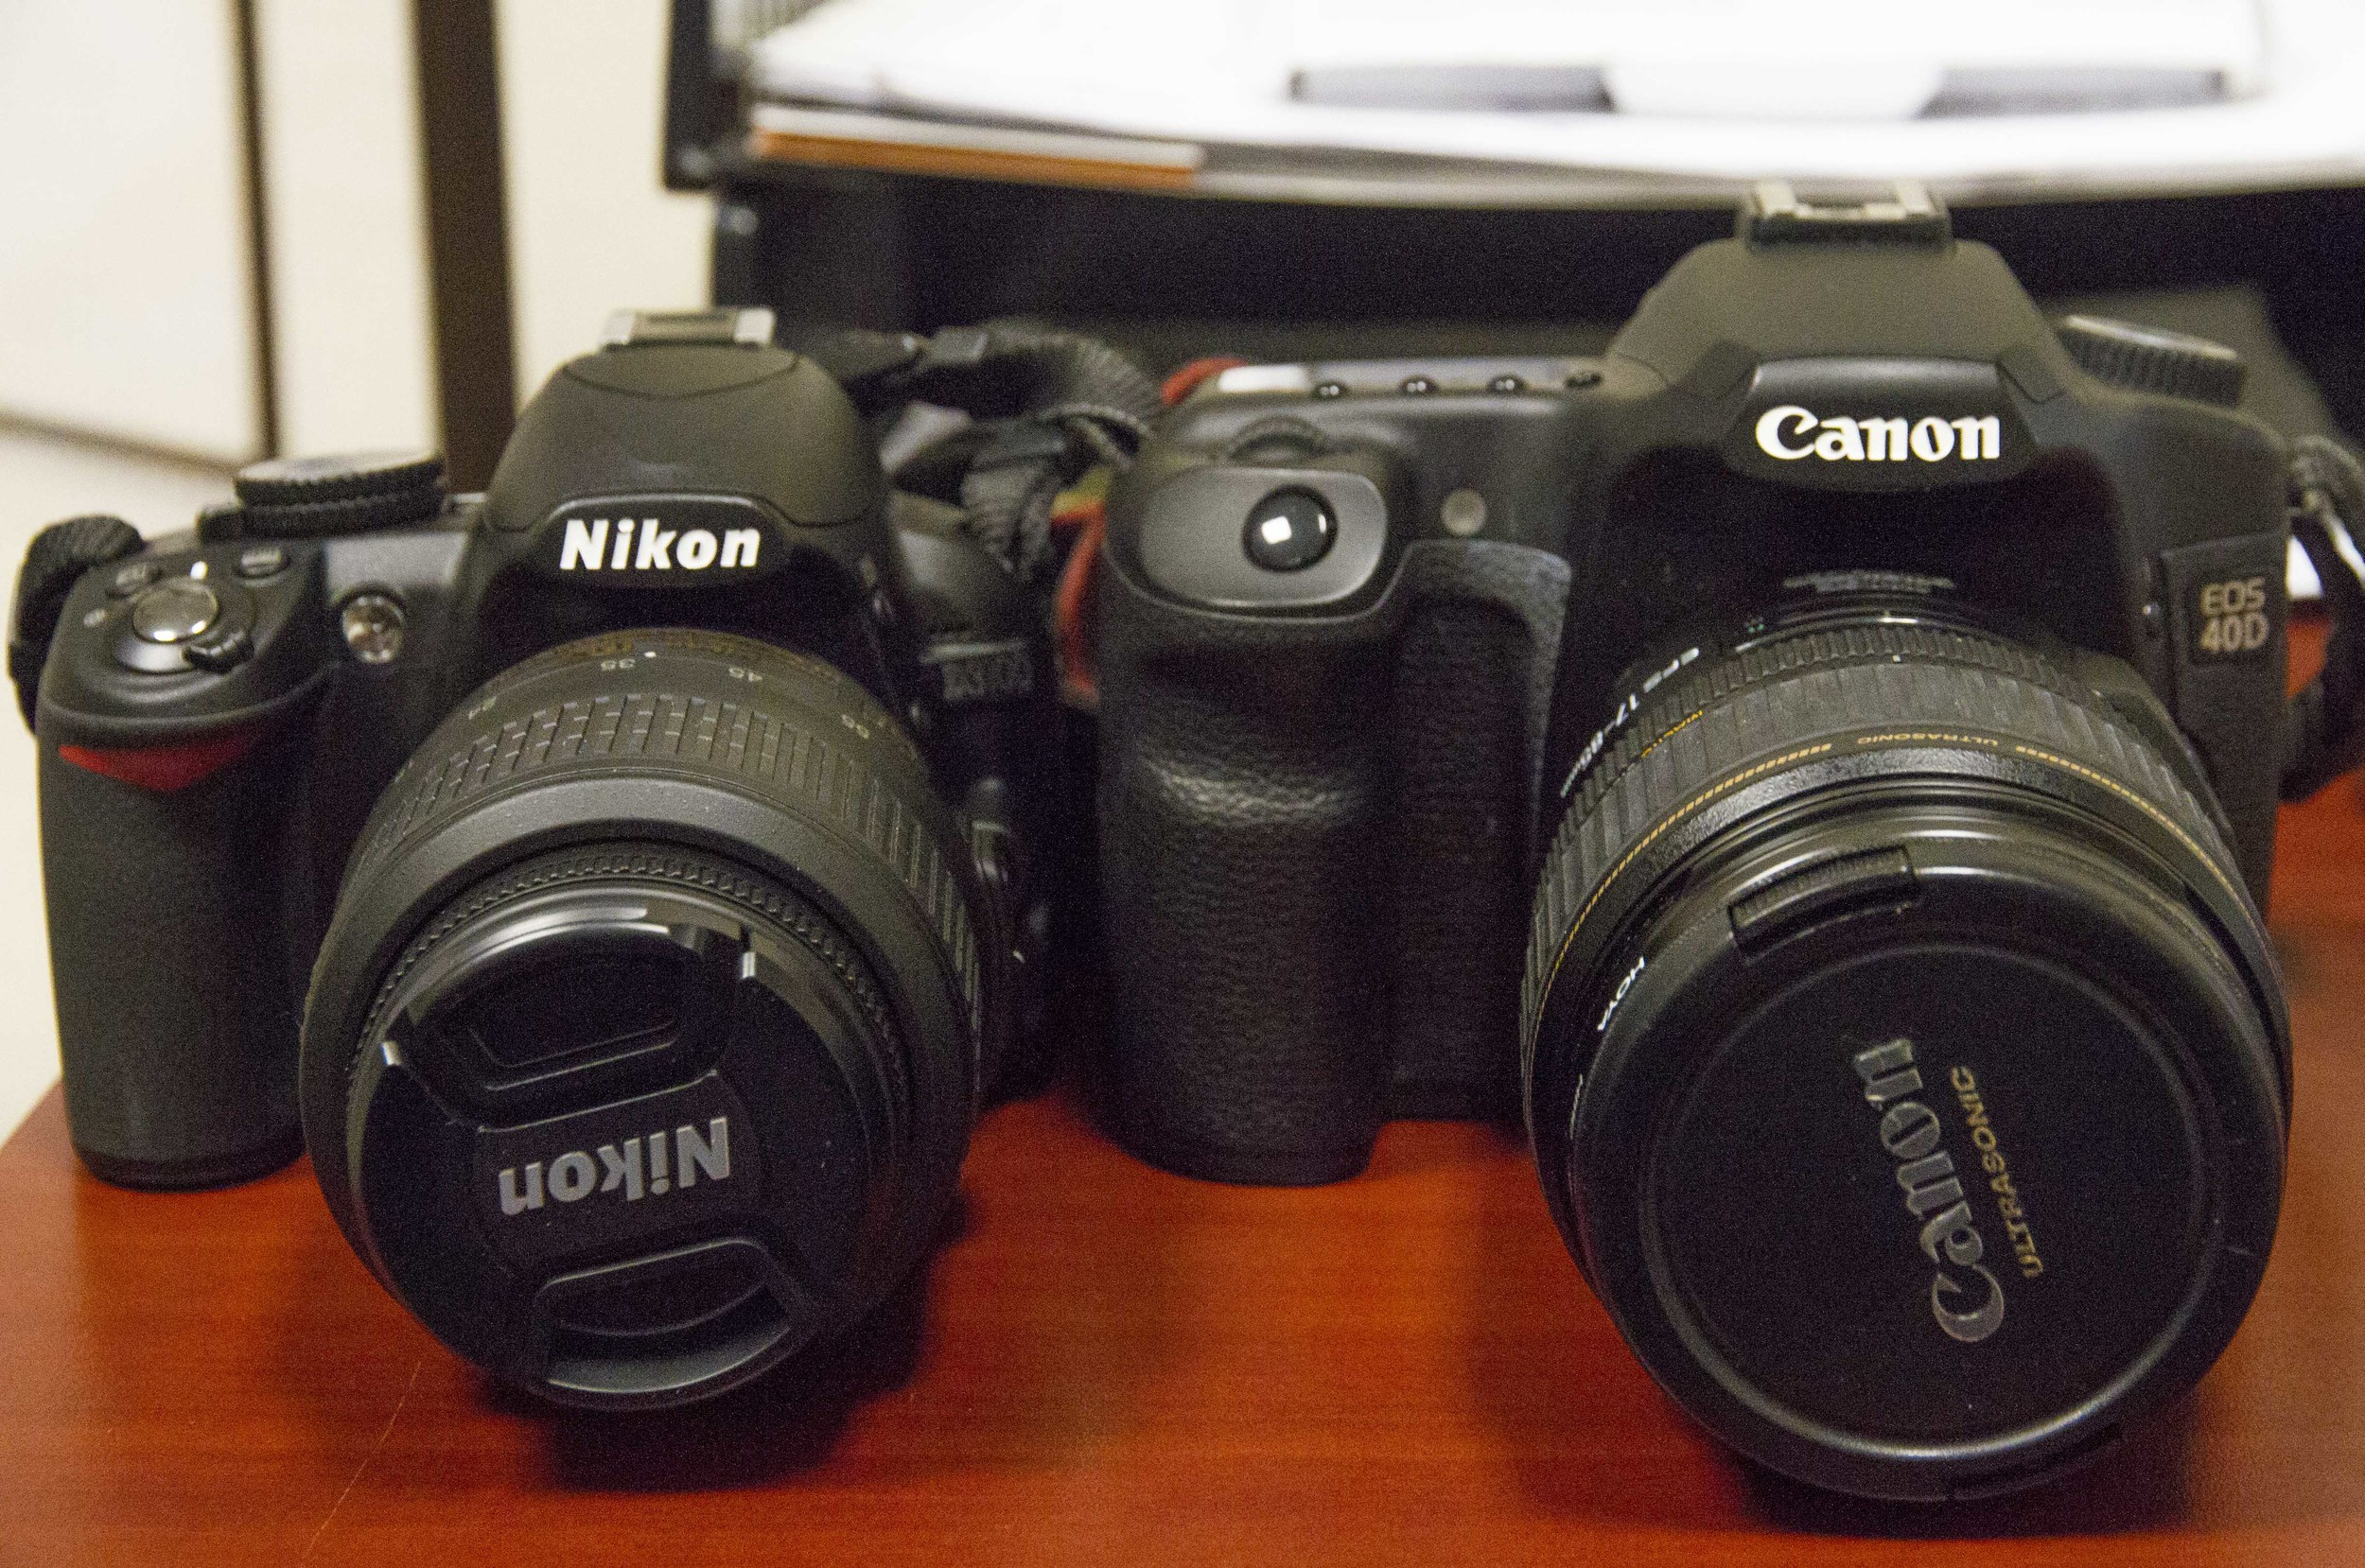 The Nikon D3100 is an entry level camera and the Canon 40D is an intermediate level camera. The models are not equally comparable   © 2013 Stephanie Canarte